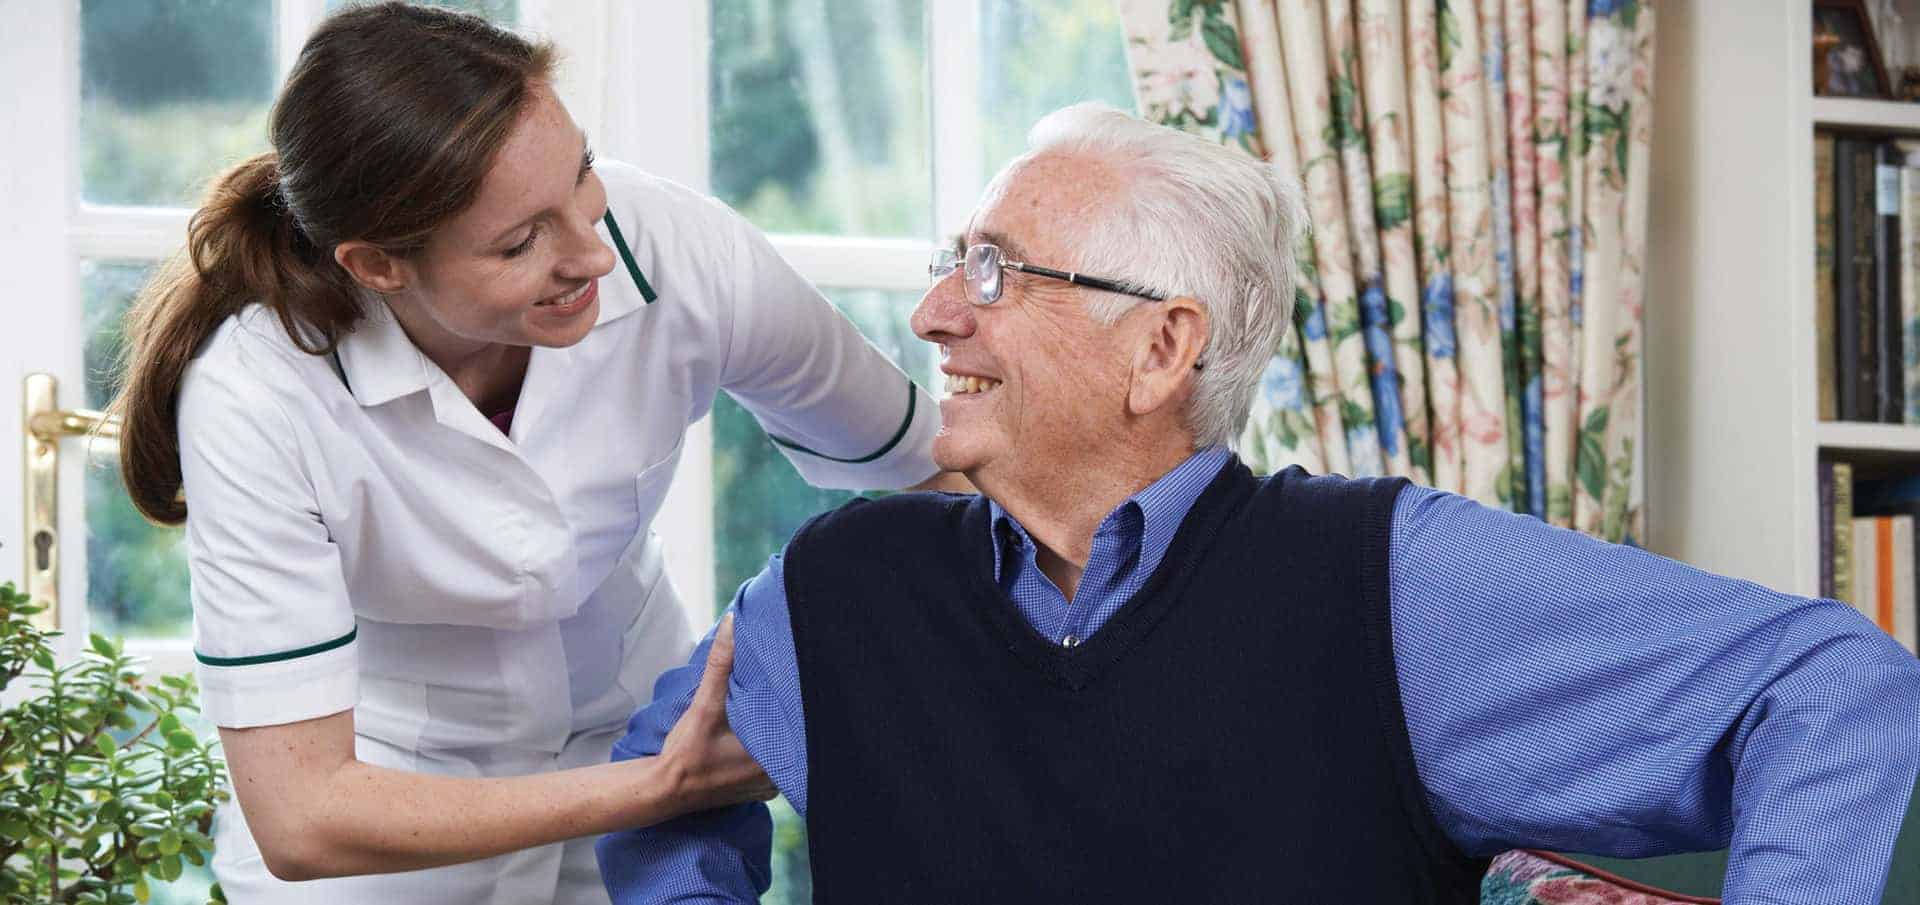 home care aide helping senior man out of chair